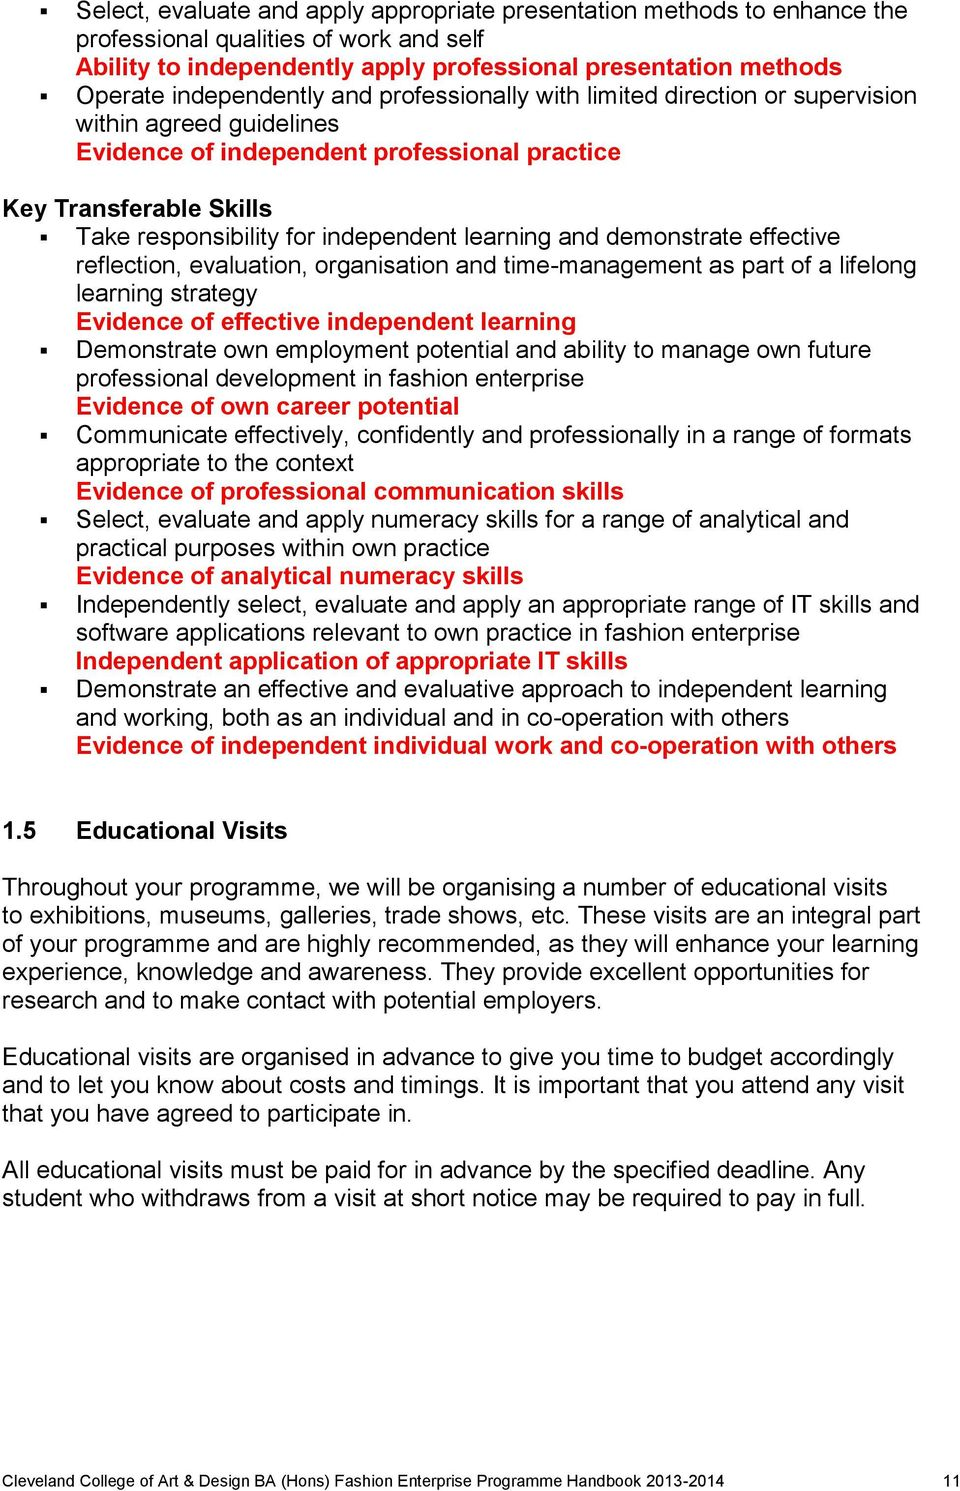 independent learning and demonstrate effective reflection, evaluation, organisation and time-management as part of a lifelong learning strategy Evidence of effective independent learning Demonstrate